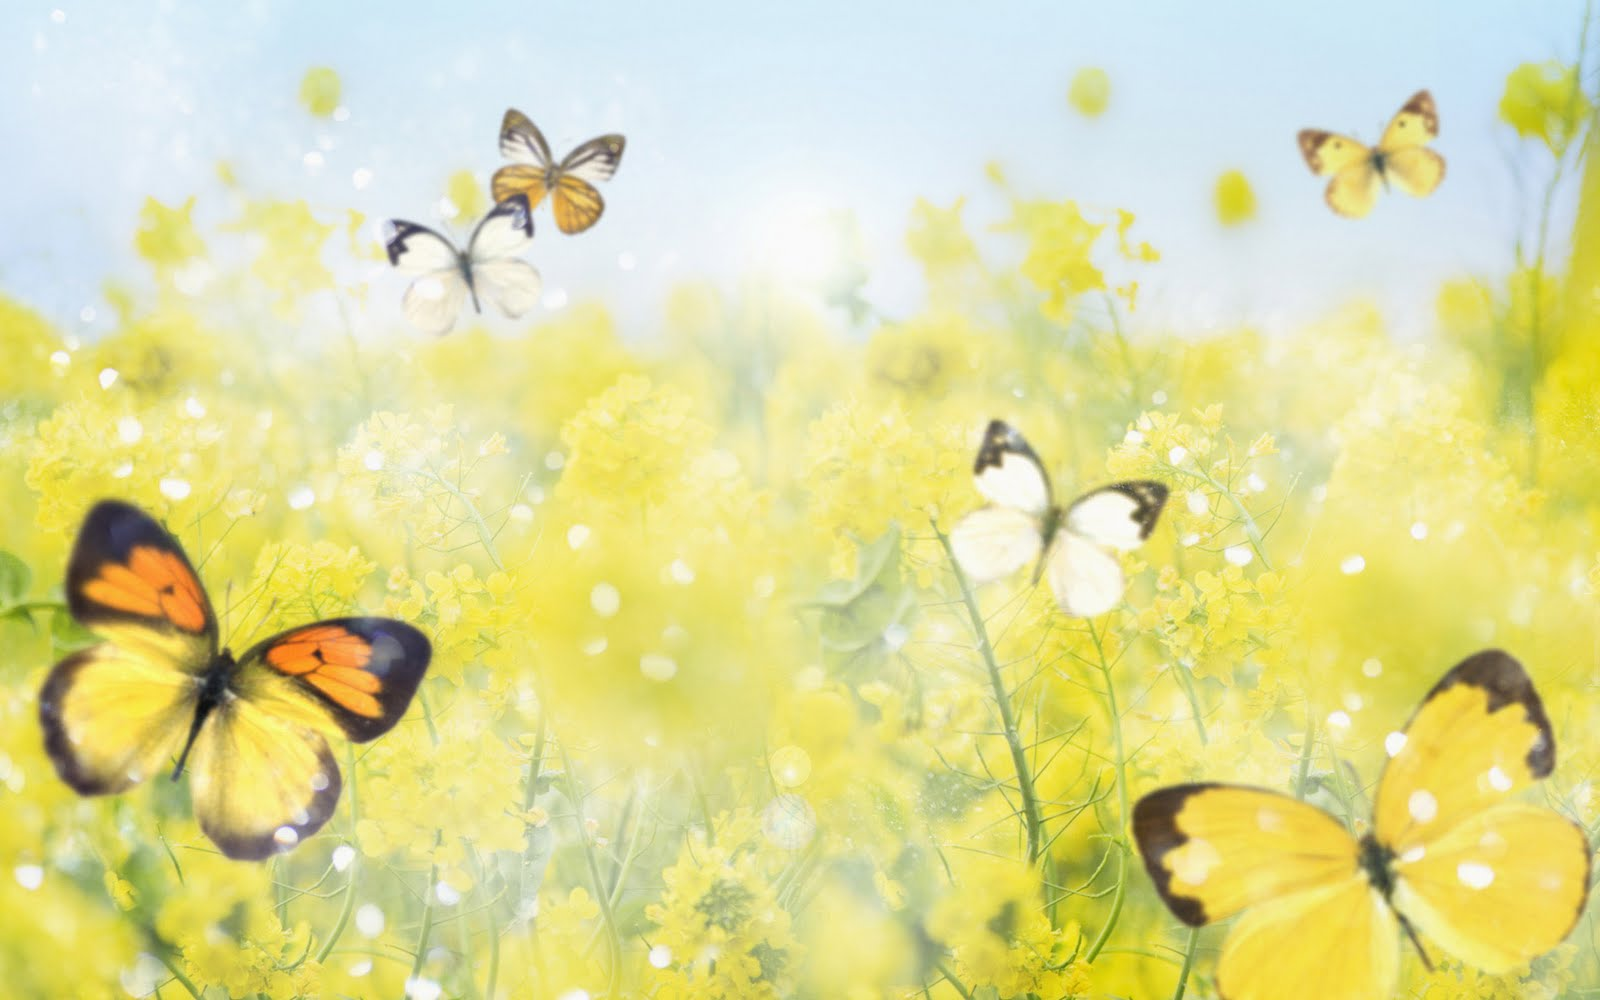 http://4.bp.blogspot.com/-oScYXgNdIA0/UO32DK2iT8I/AAAAAAAANB0/EQYsT4wo6BQ/s1600/animated_butterfly_wallpaper.jpg